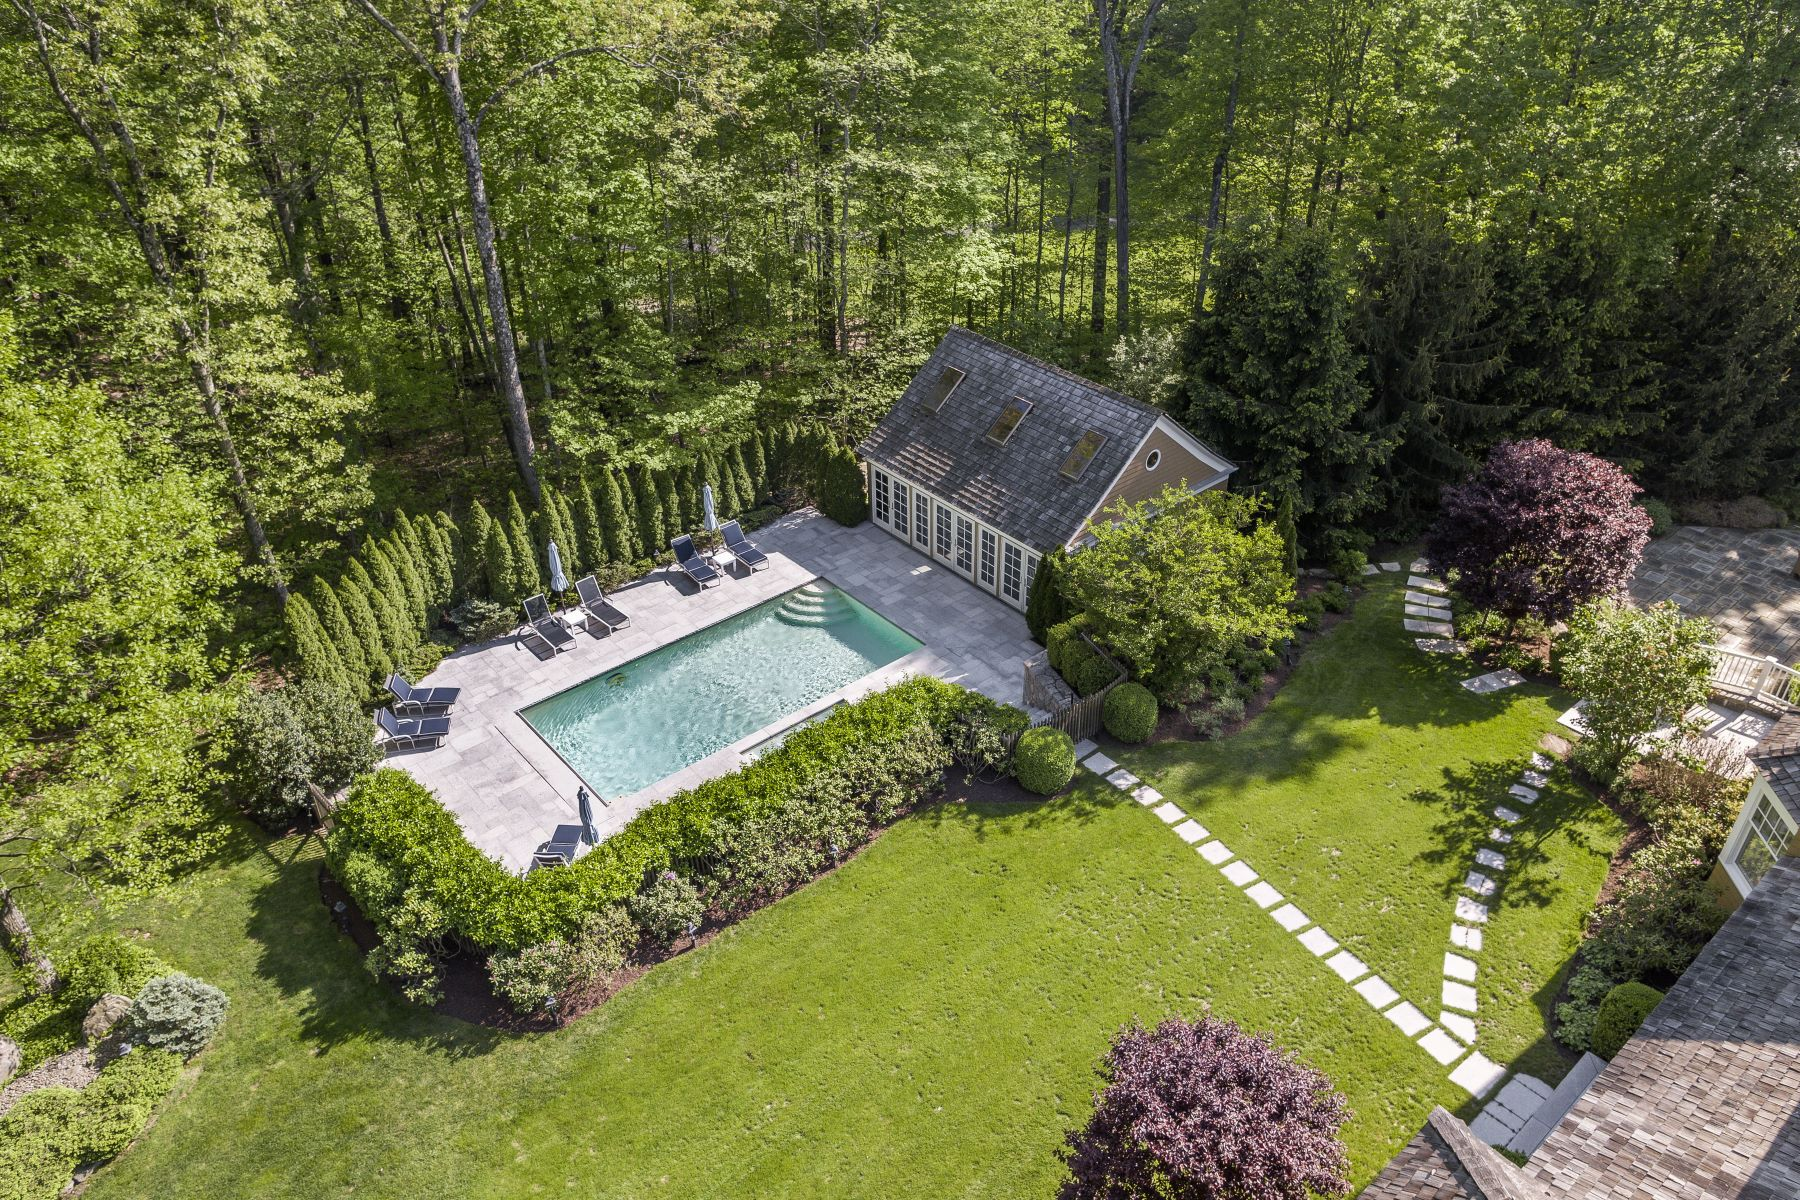 Additional photo for property listing at 284 West Patent Road 284 West Patent Road Bedford Corners, New York 10549 United States